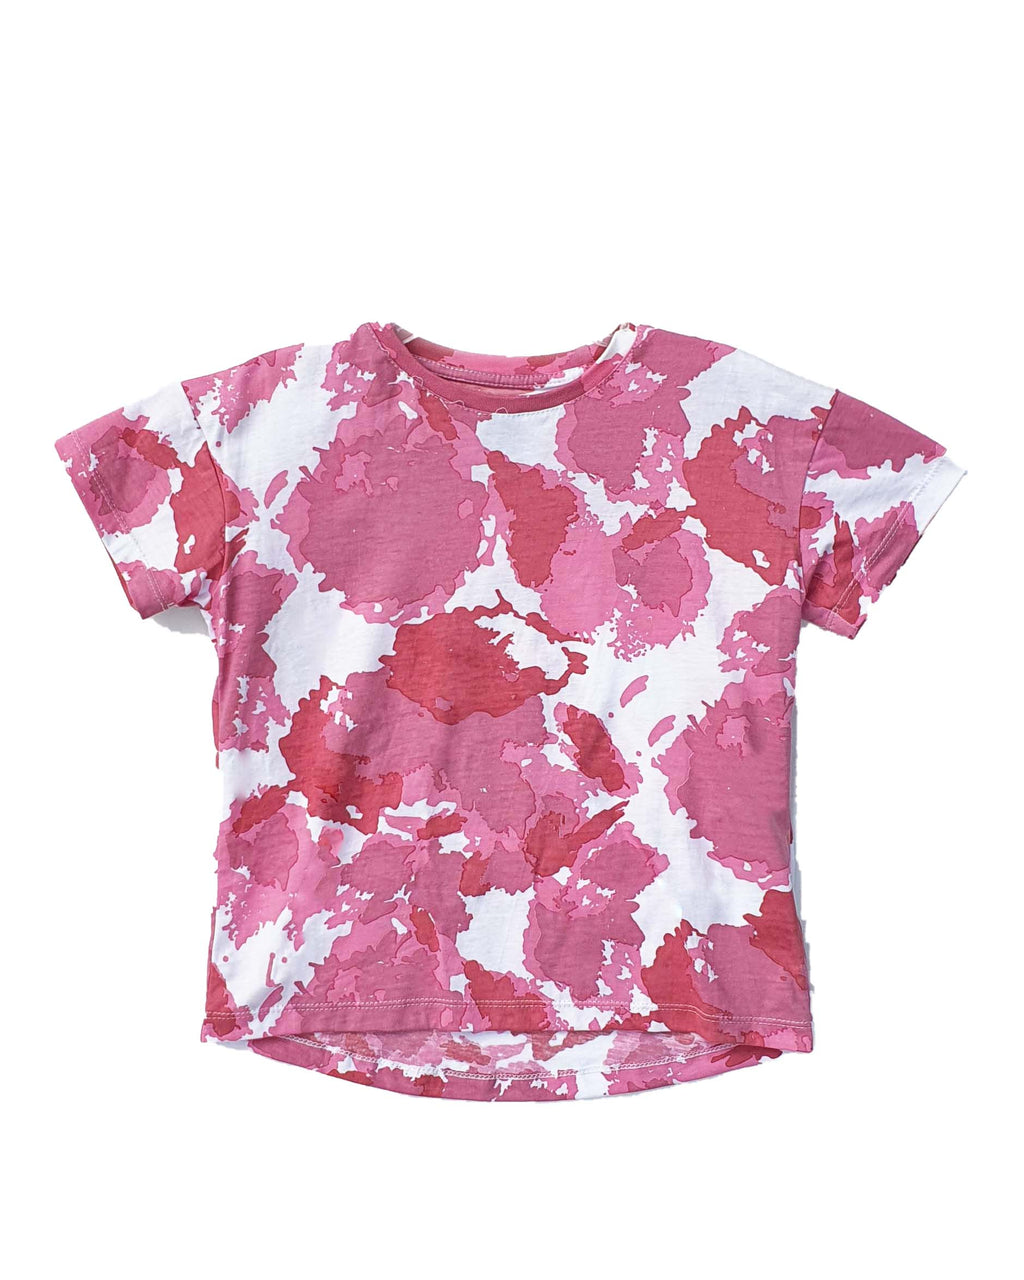 Clouds Pink T-shirt- unisex - Roses & Rhinos